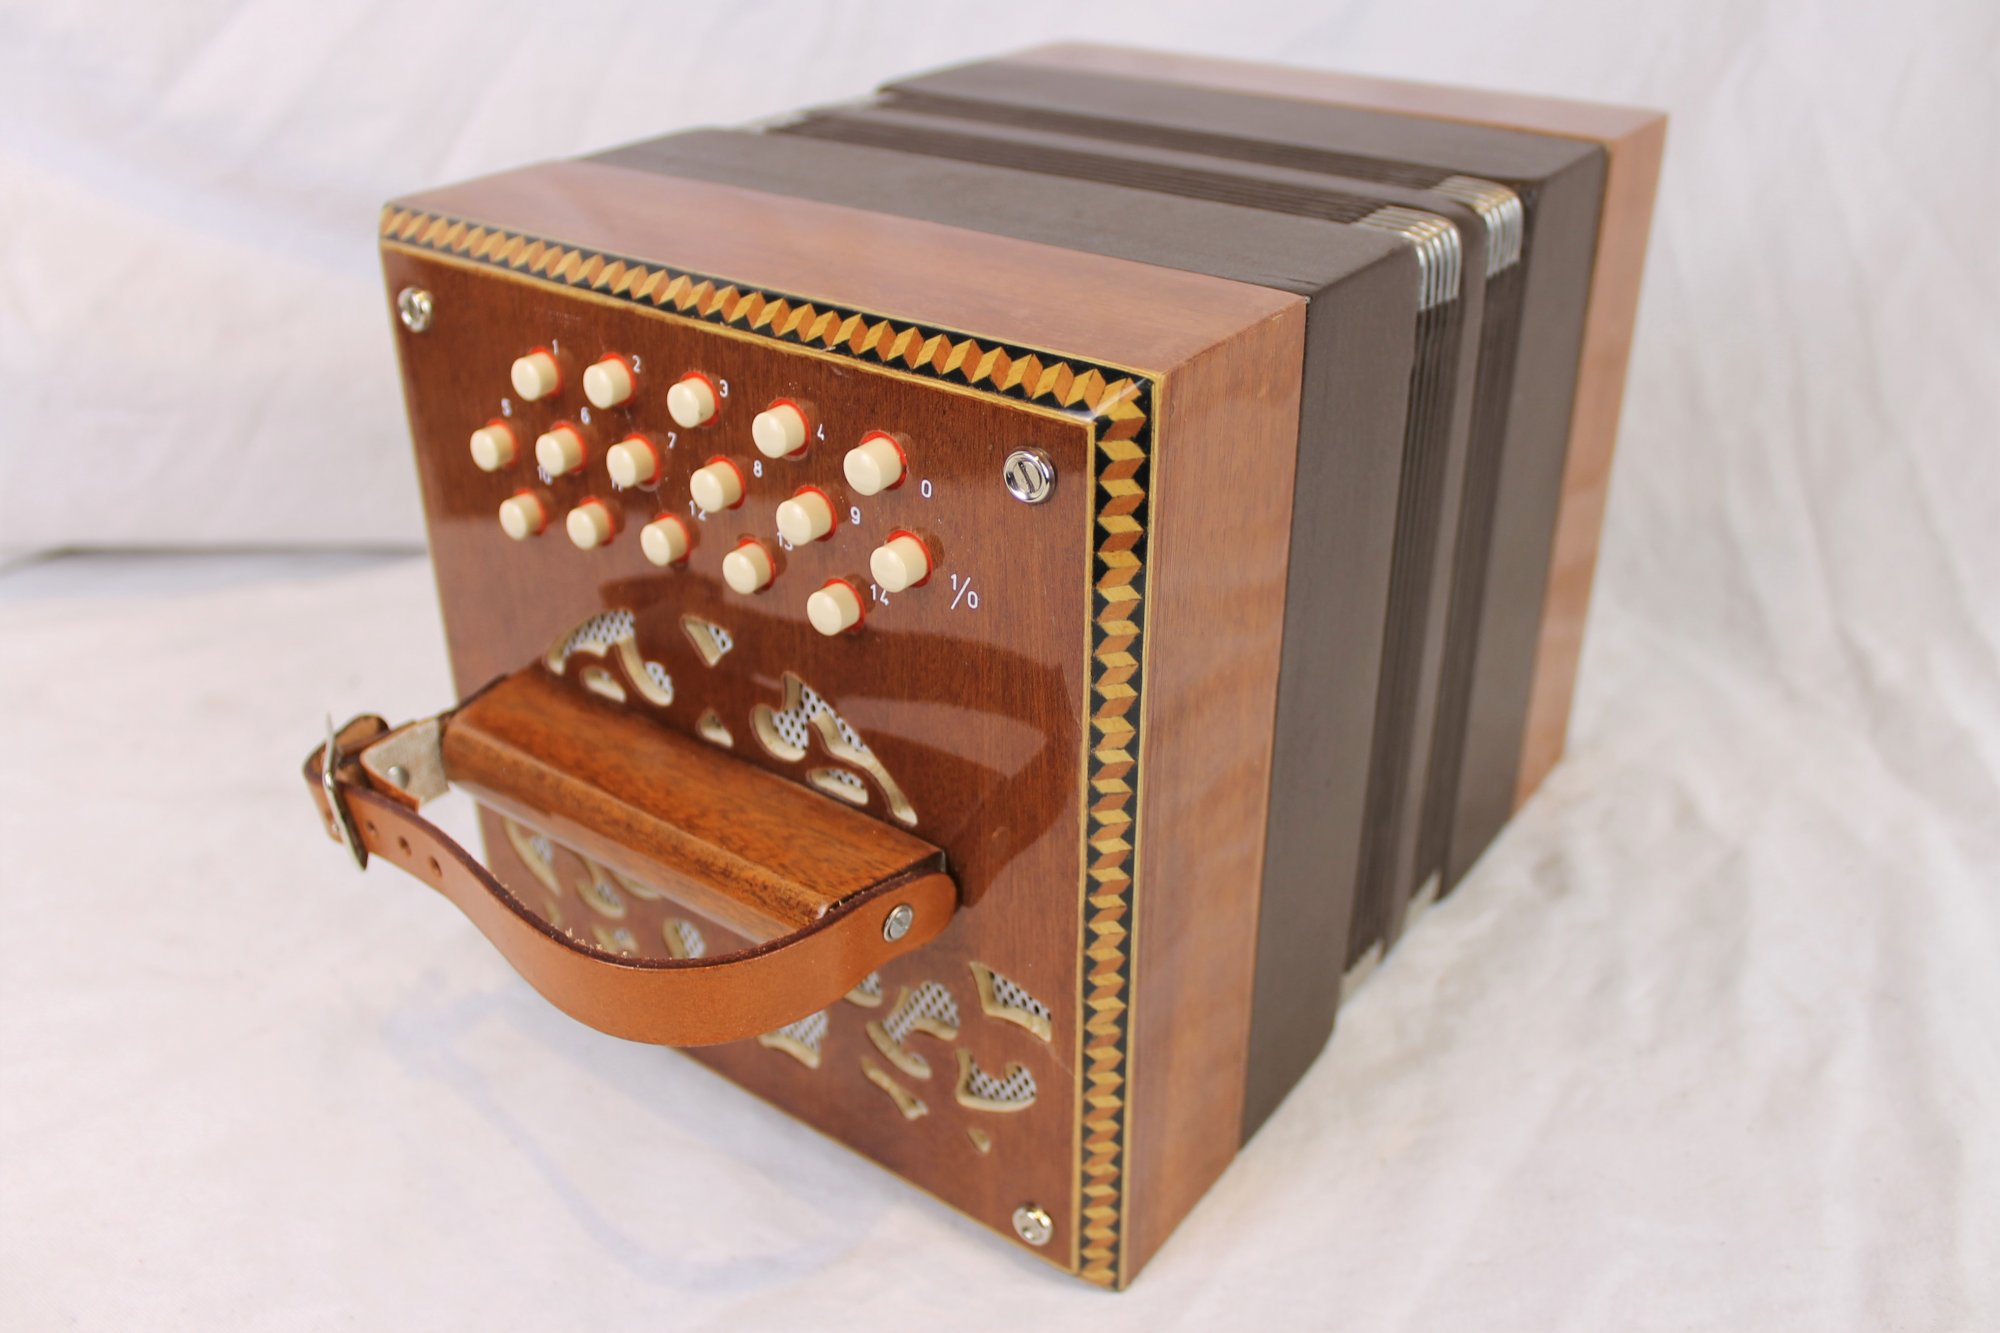 5223 - Like New Mahogany Stagi Chemnitzer Concertina C-39 Key of C (A on 5 Push) M 23 16